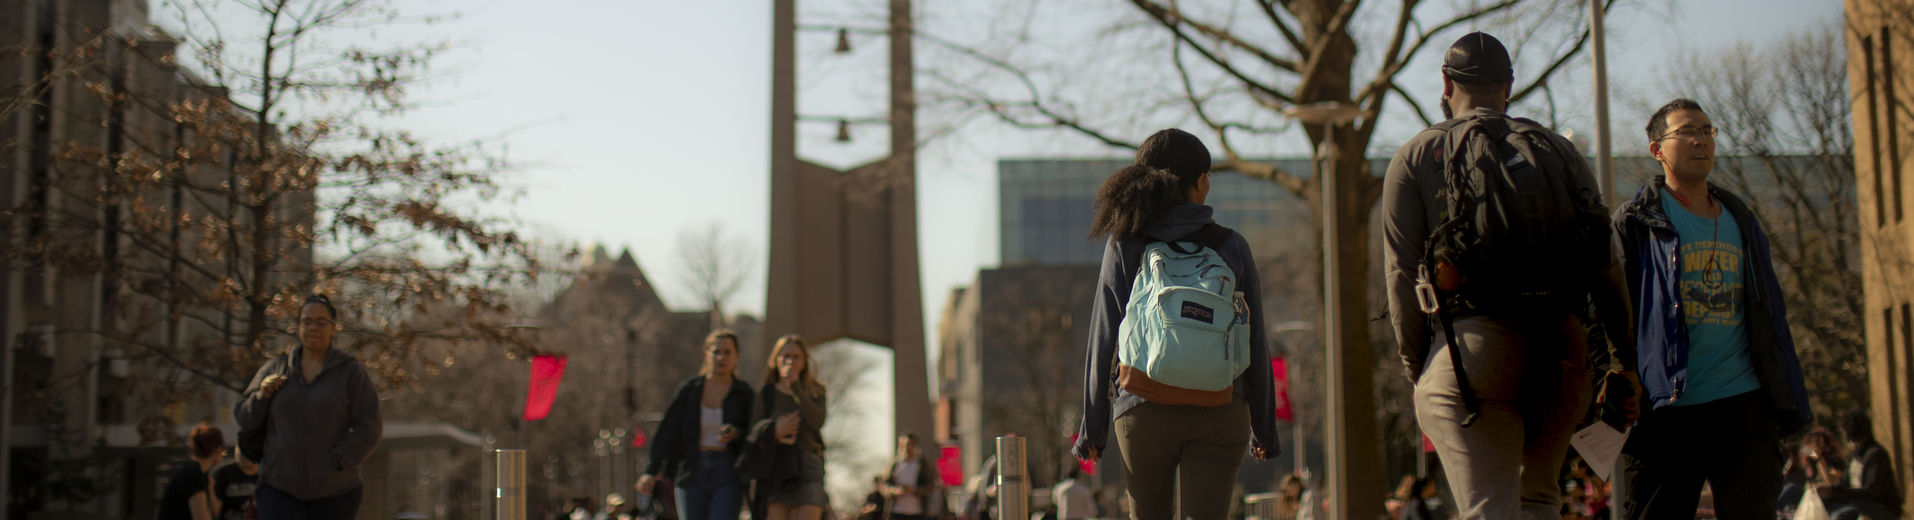 students walking across campus on a fall evening.